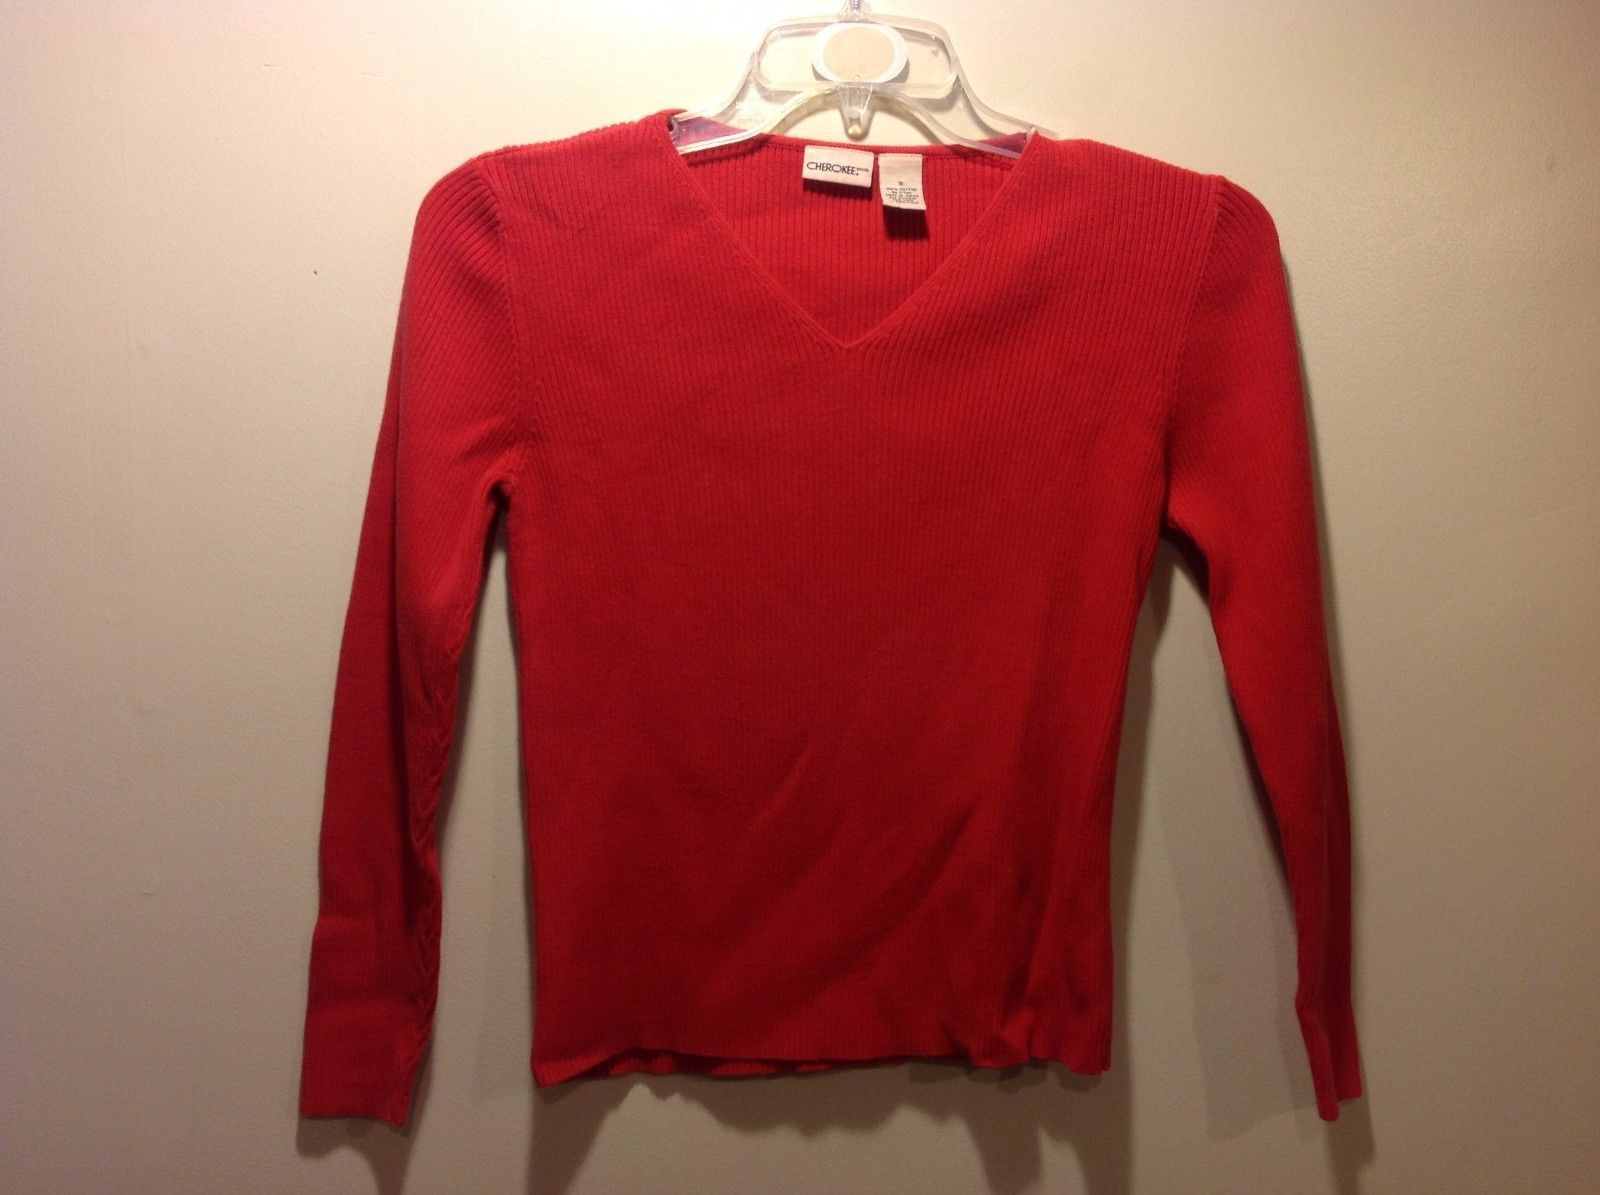 Cute Red Knit Vertically Textured V Neck Sweater by Cherokee Sz Small